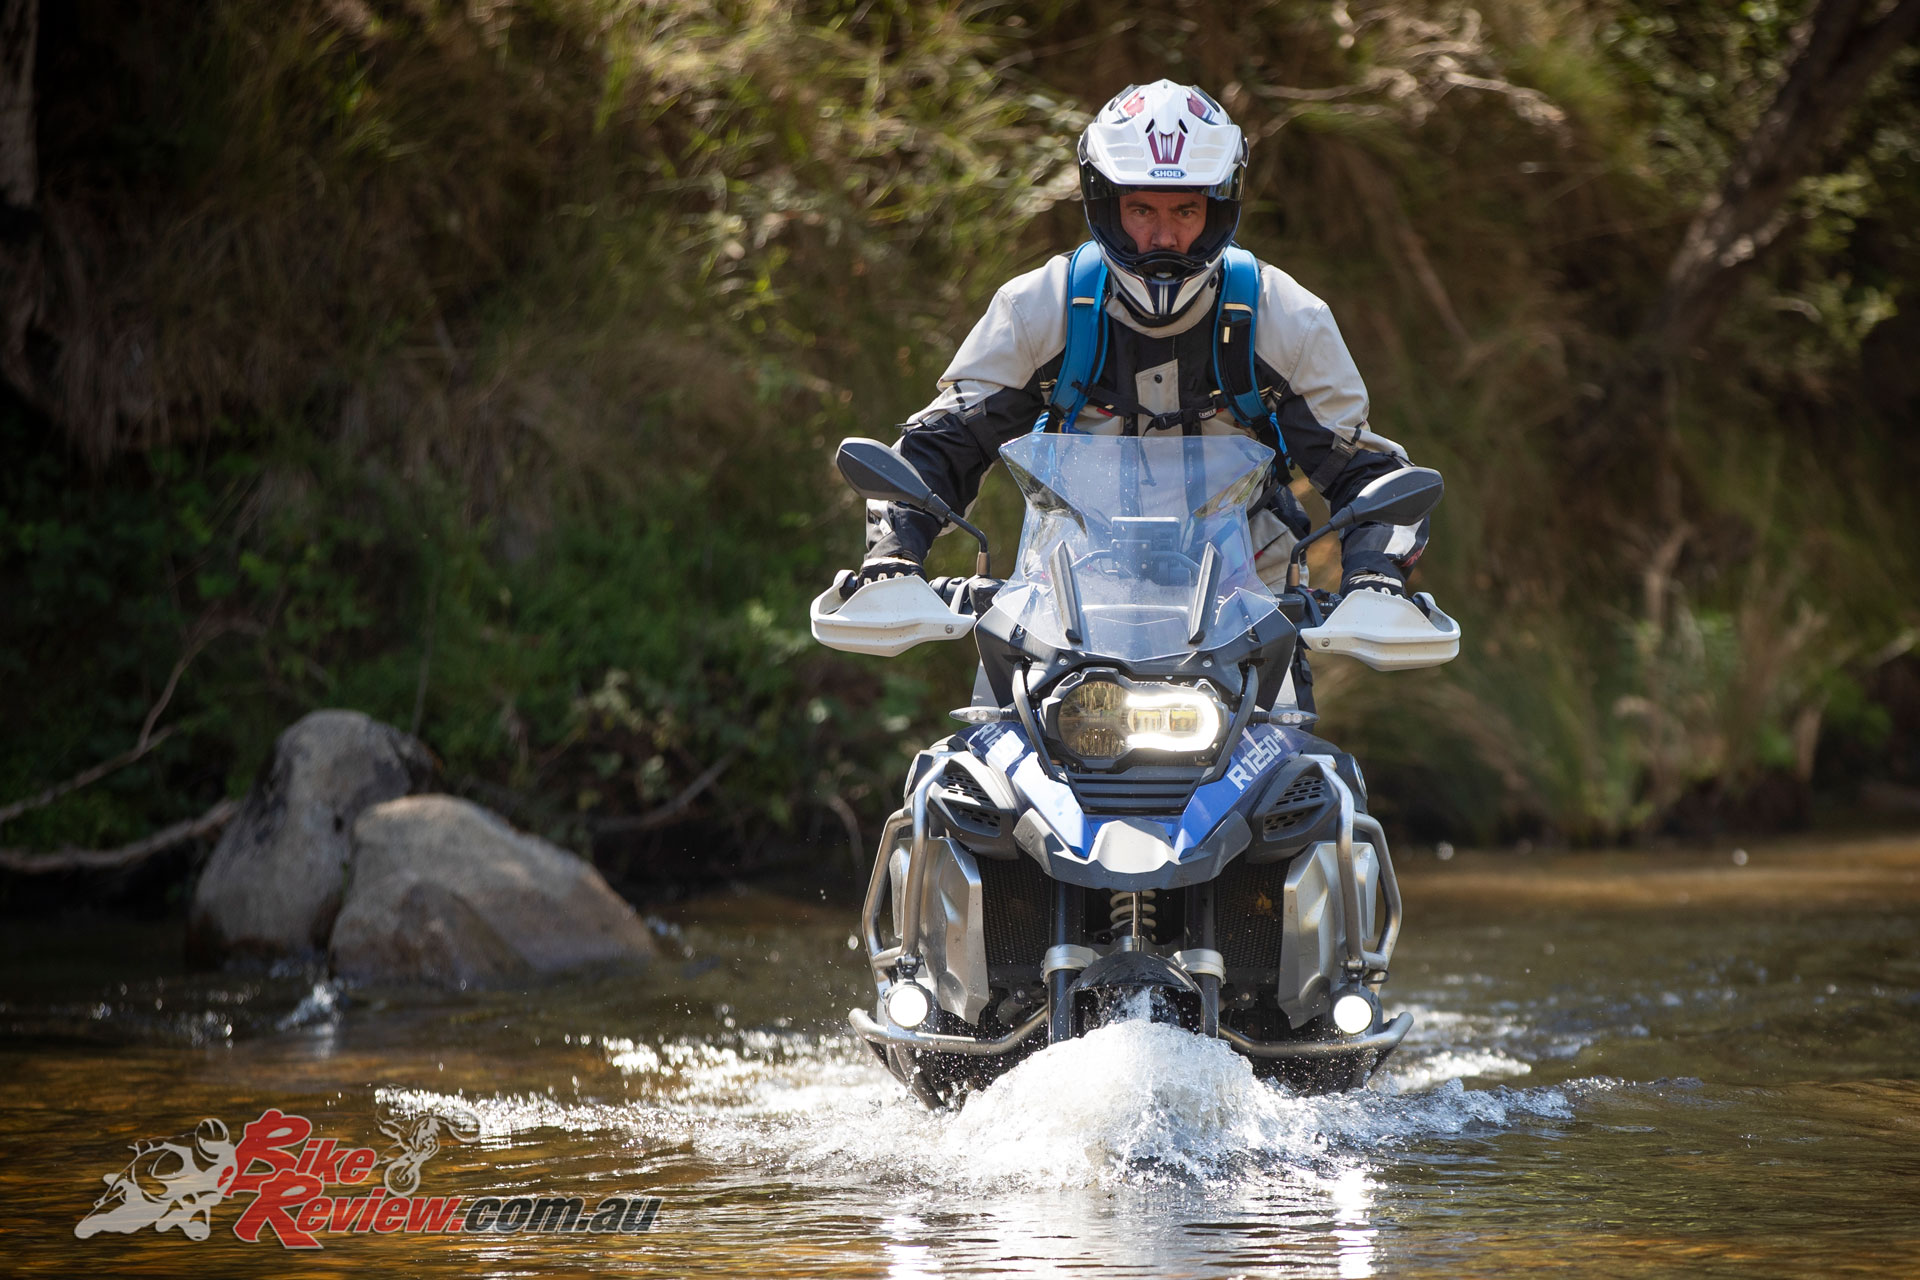 2019 BMW R 1250 GS Adventure Rallye X